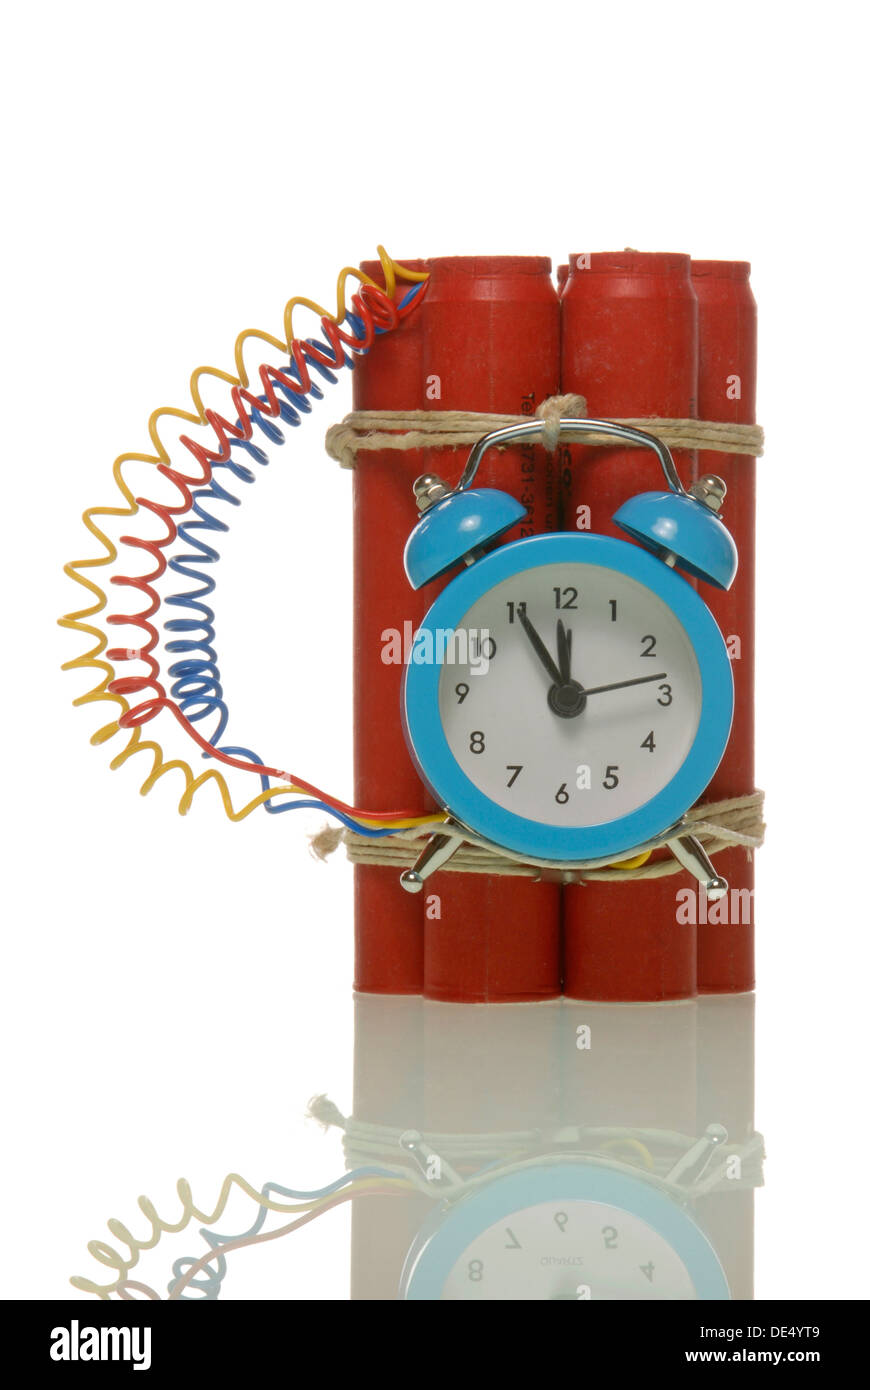 Bomb, sticks of dynamite with an alarm clock - Stock Image